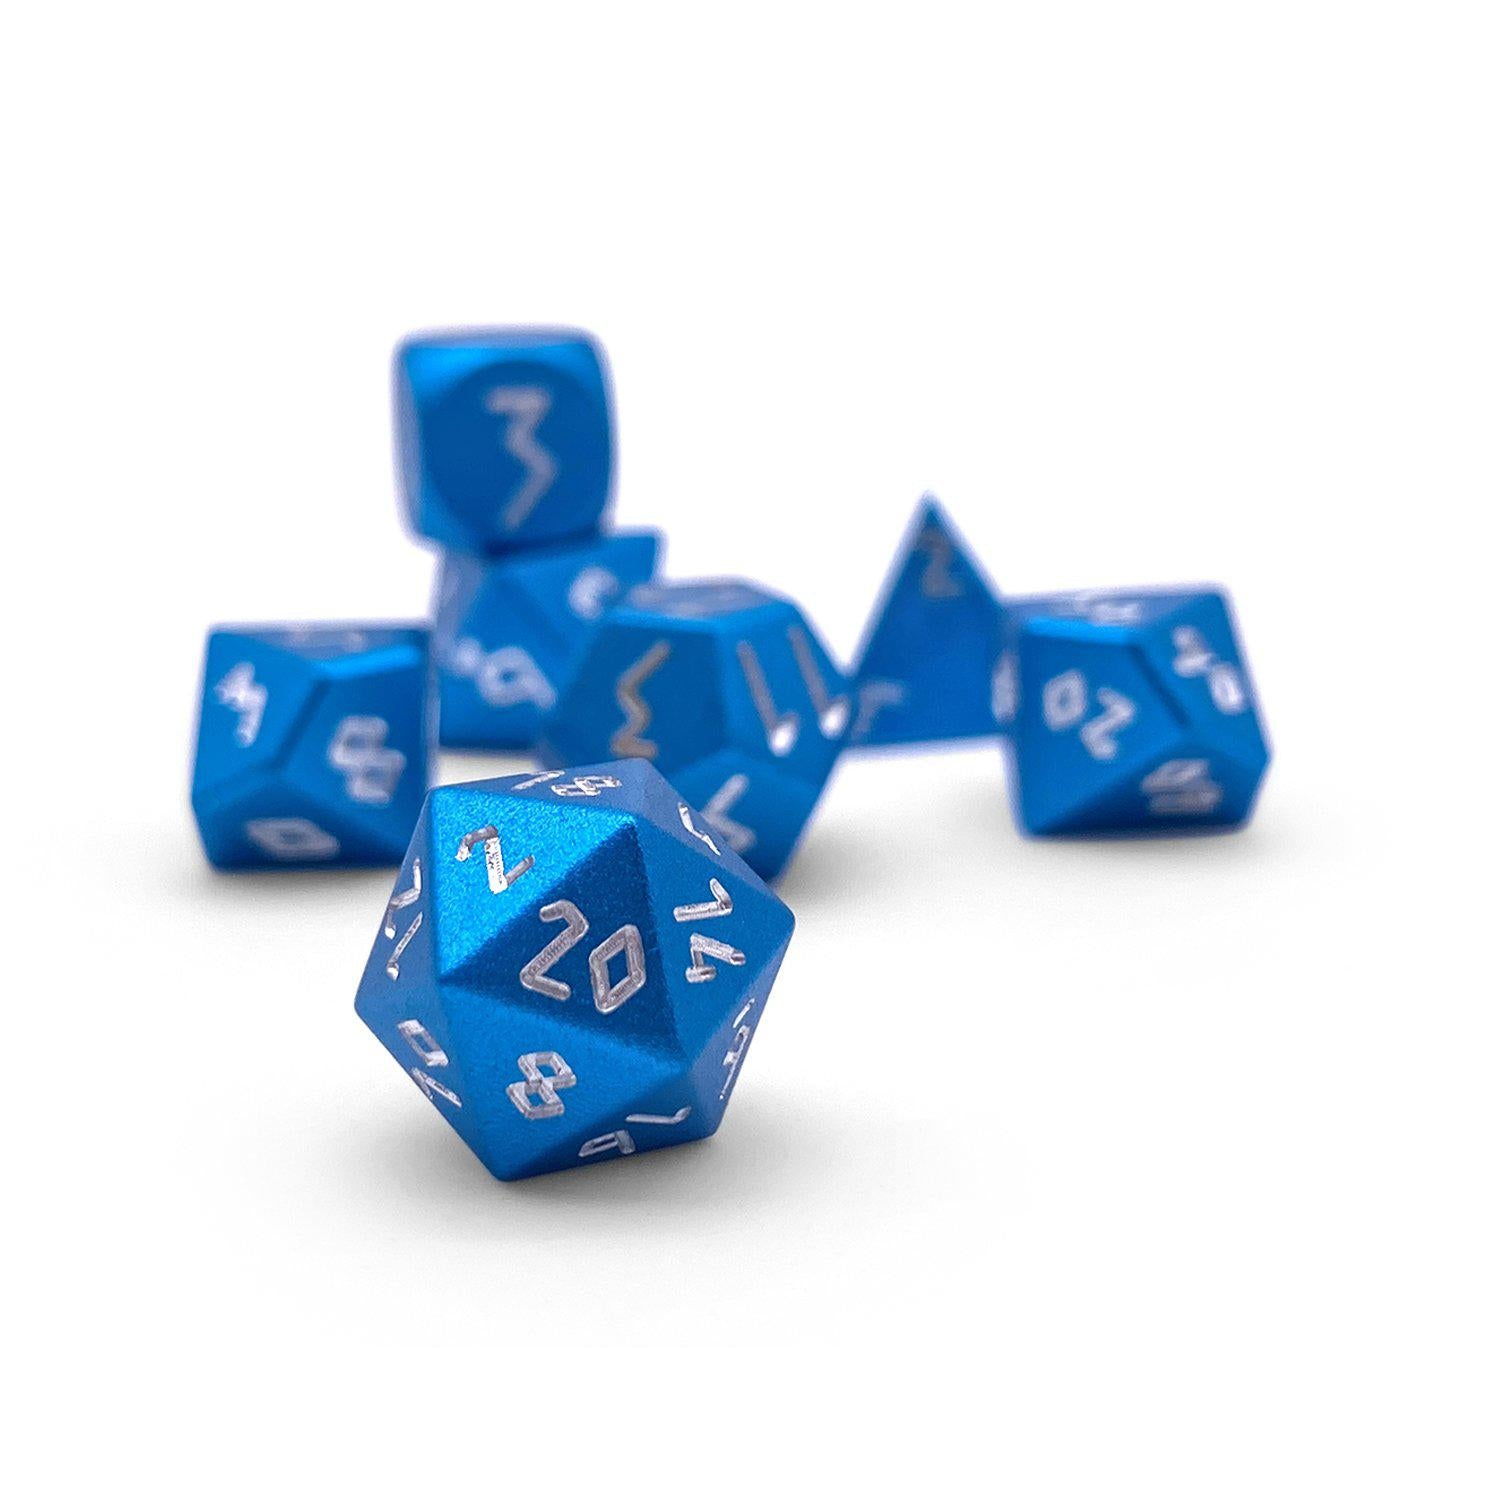 Sea Teal Pebble ™ Dice - 10mm 6063 Aircraft Grade Aluminum Mini